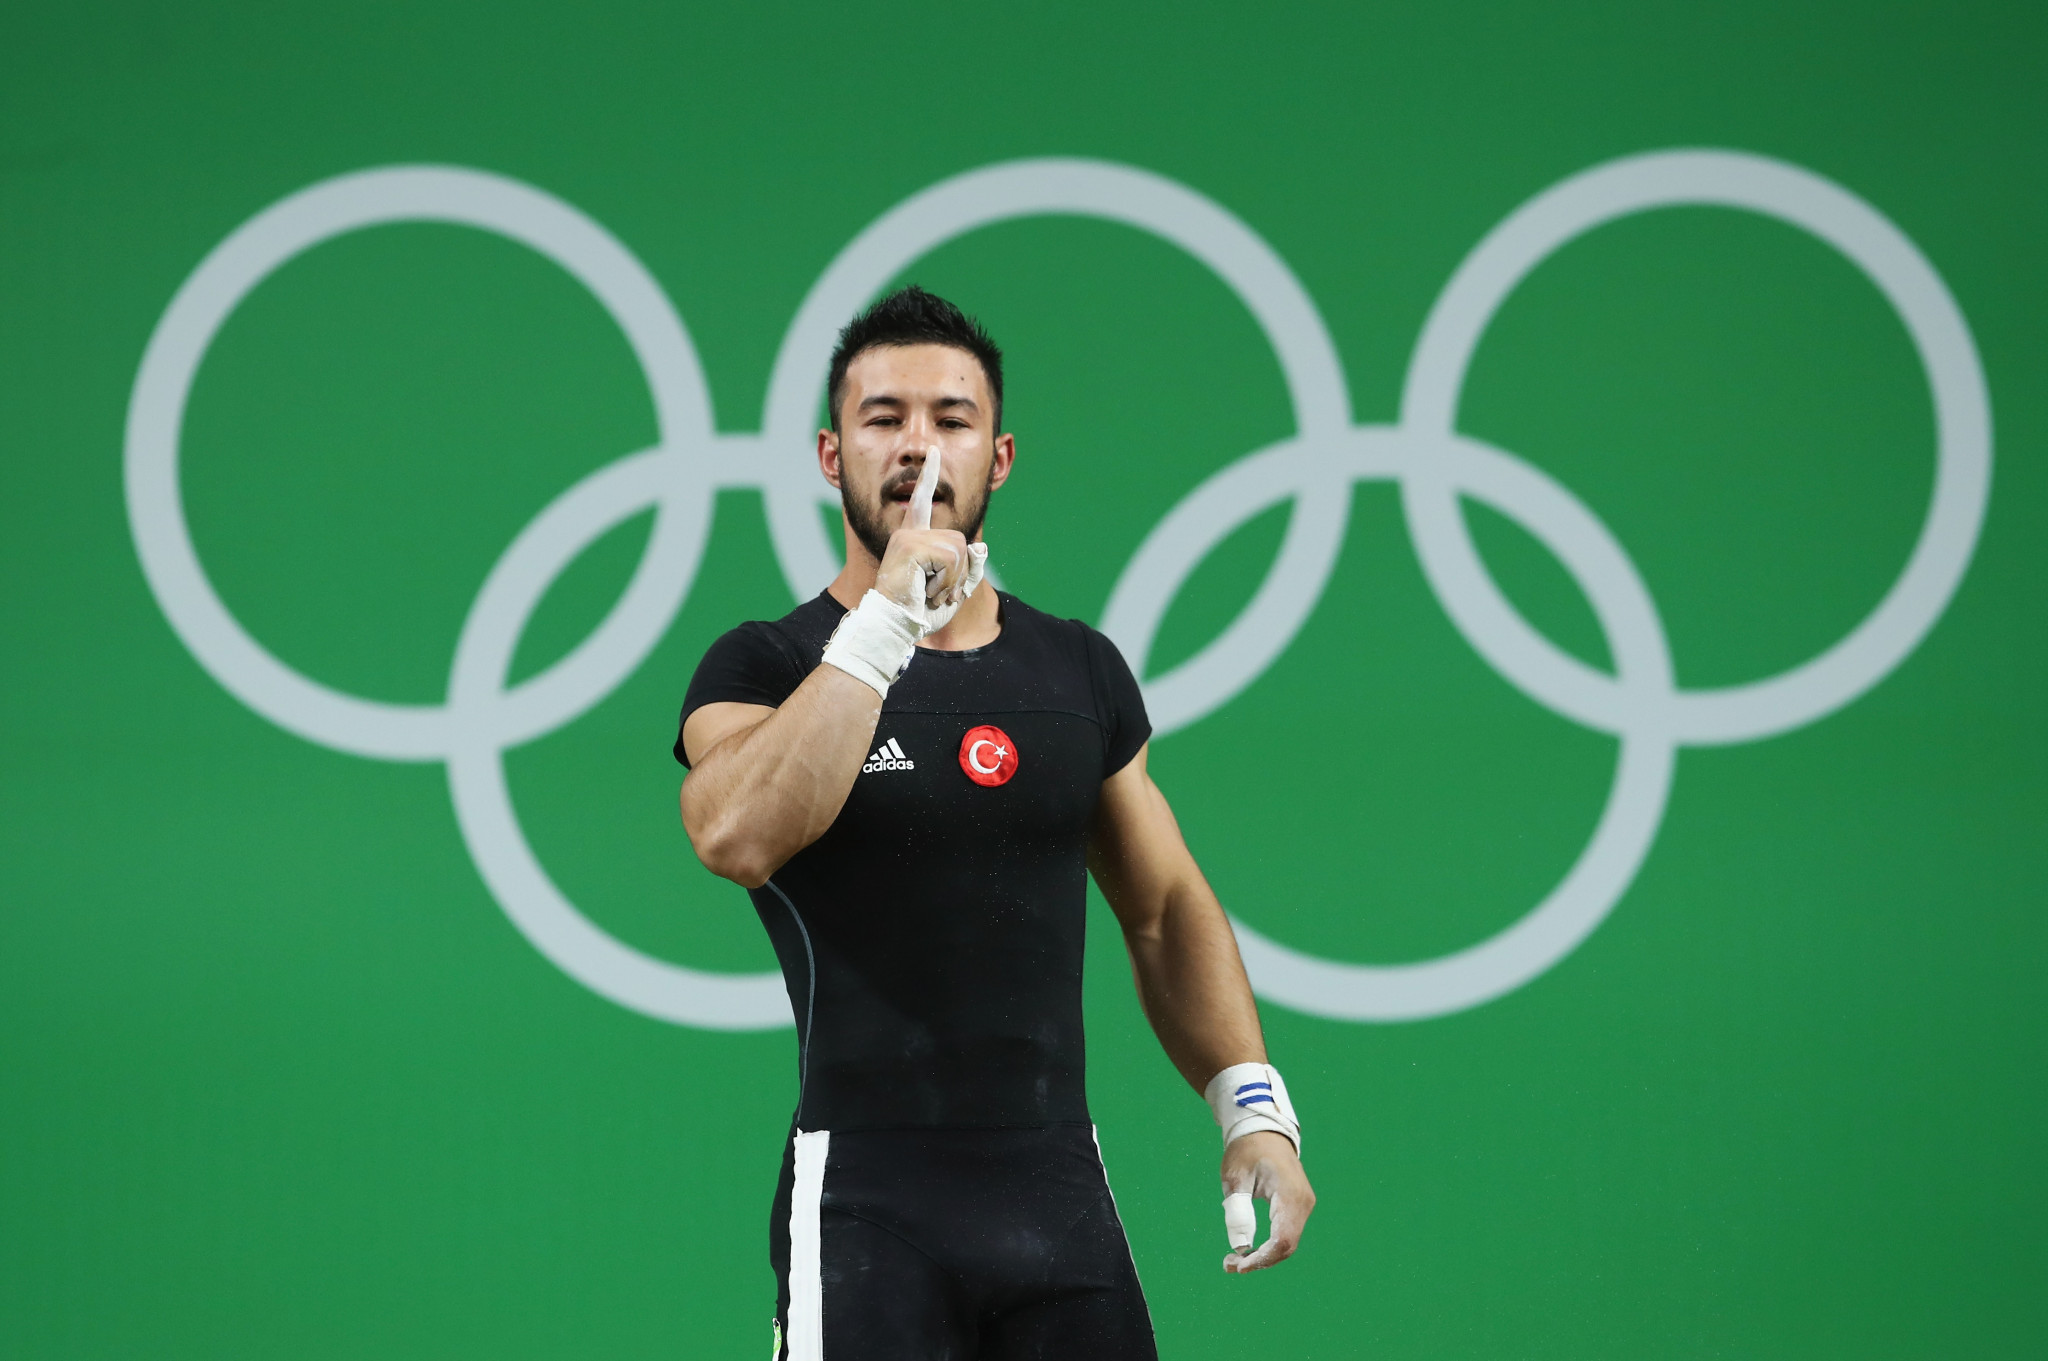 Daniyar Ismayilov, who represented Turkmenistan before switching allegiance to Turkey, has led a controversial career ©Getty Images